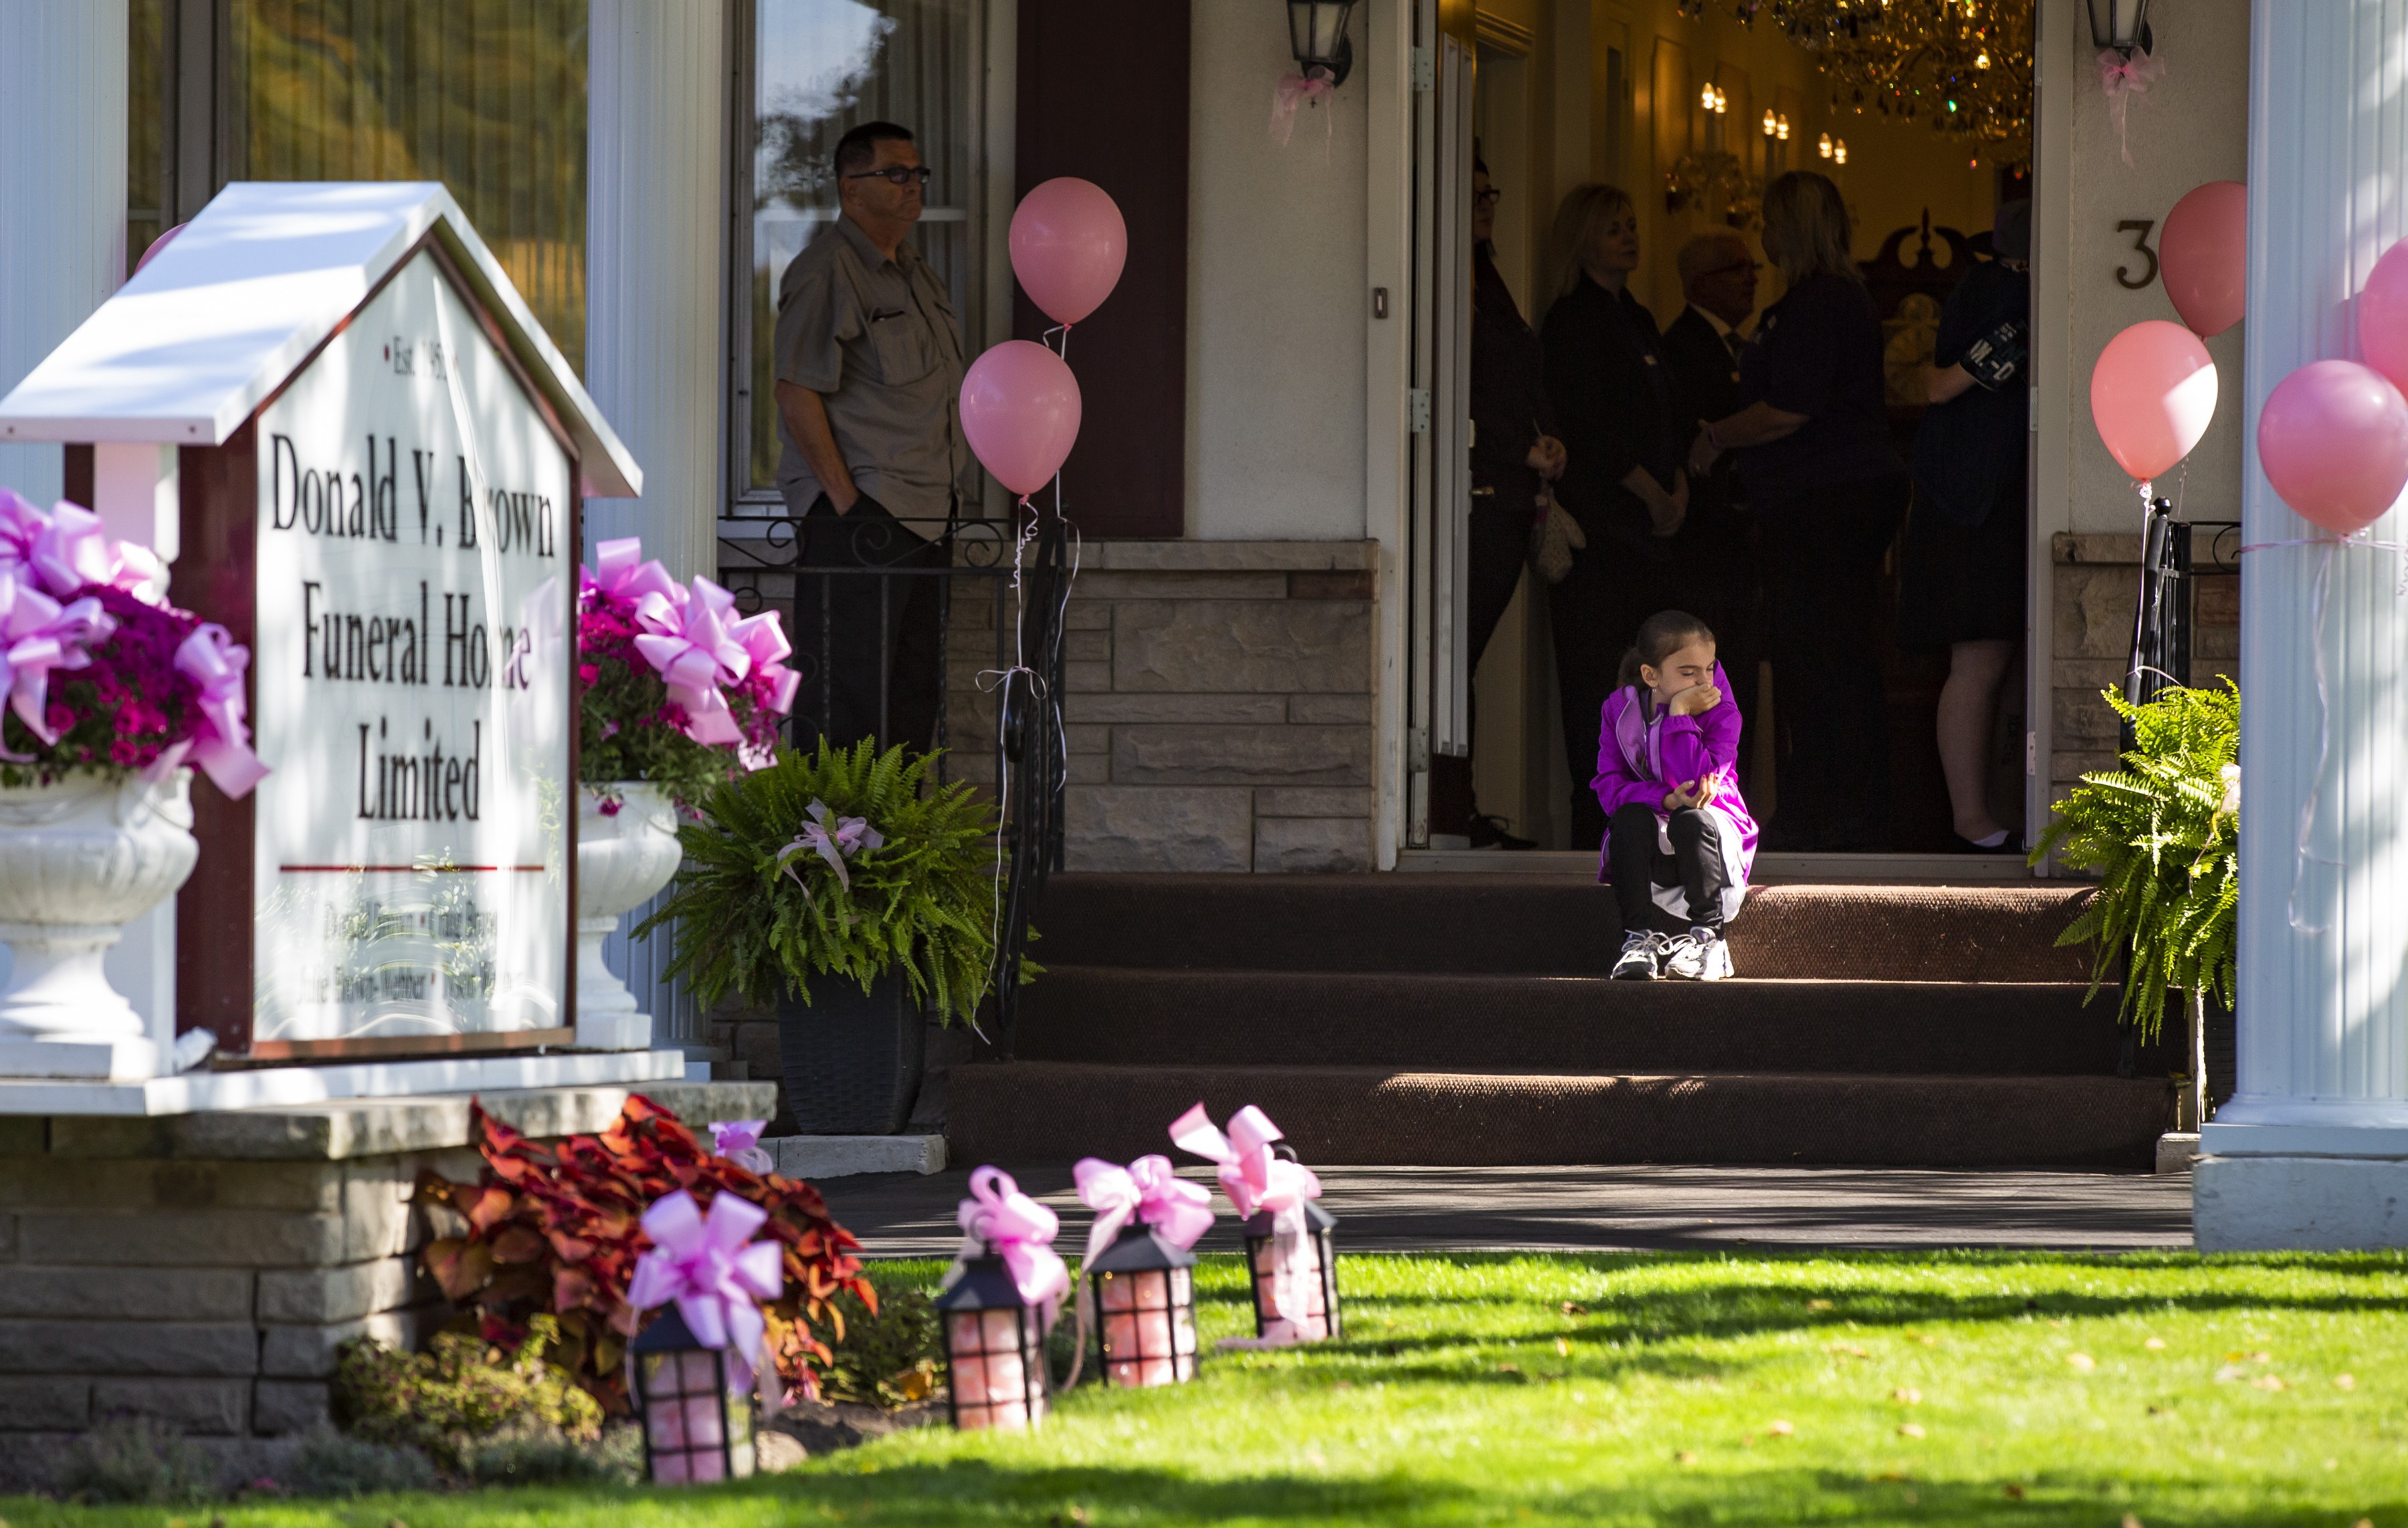 Friends, family gather to say one final goodbye to Devan Selvey